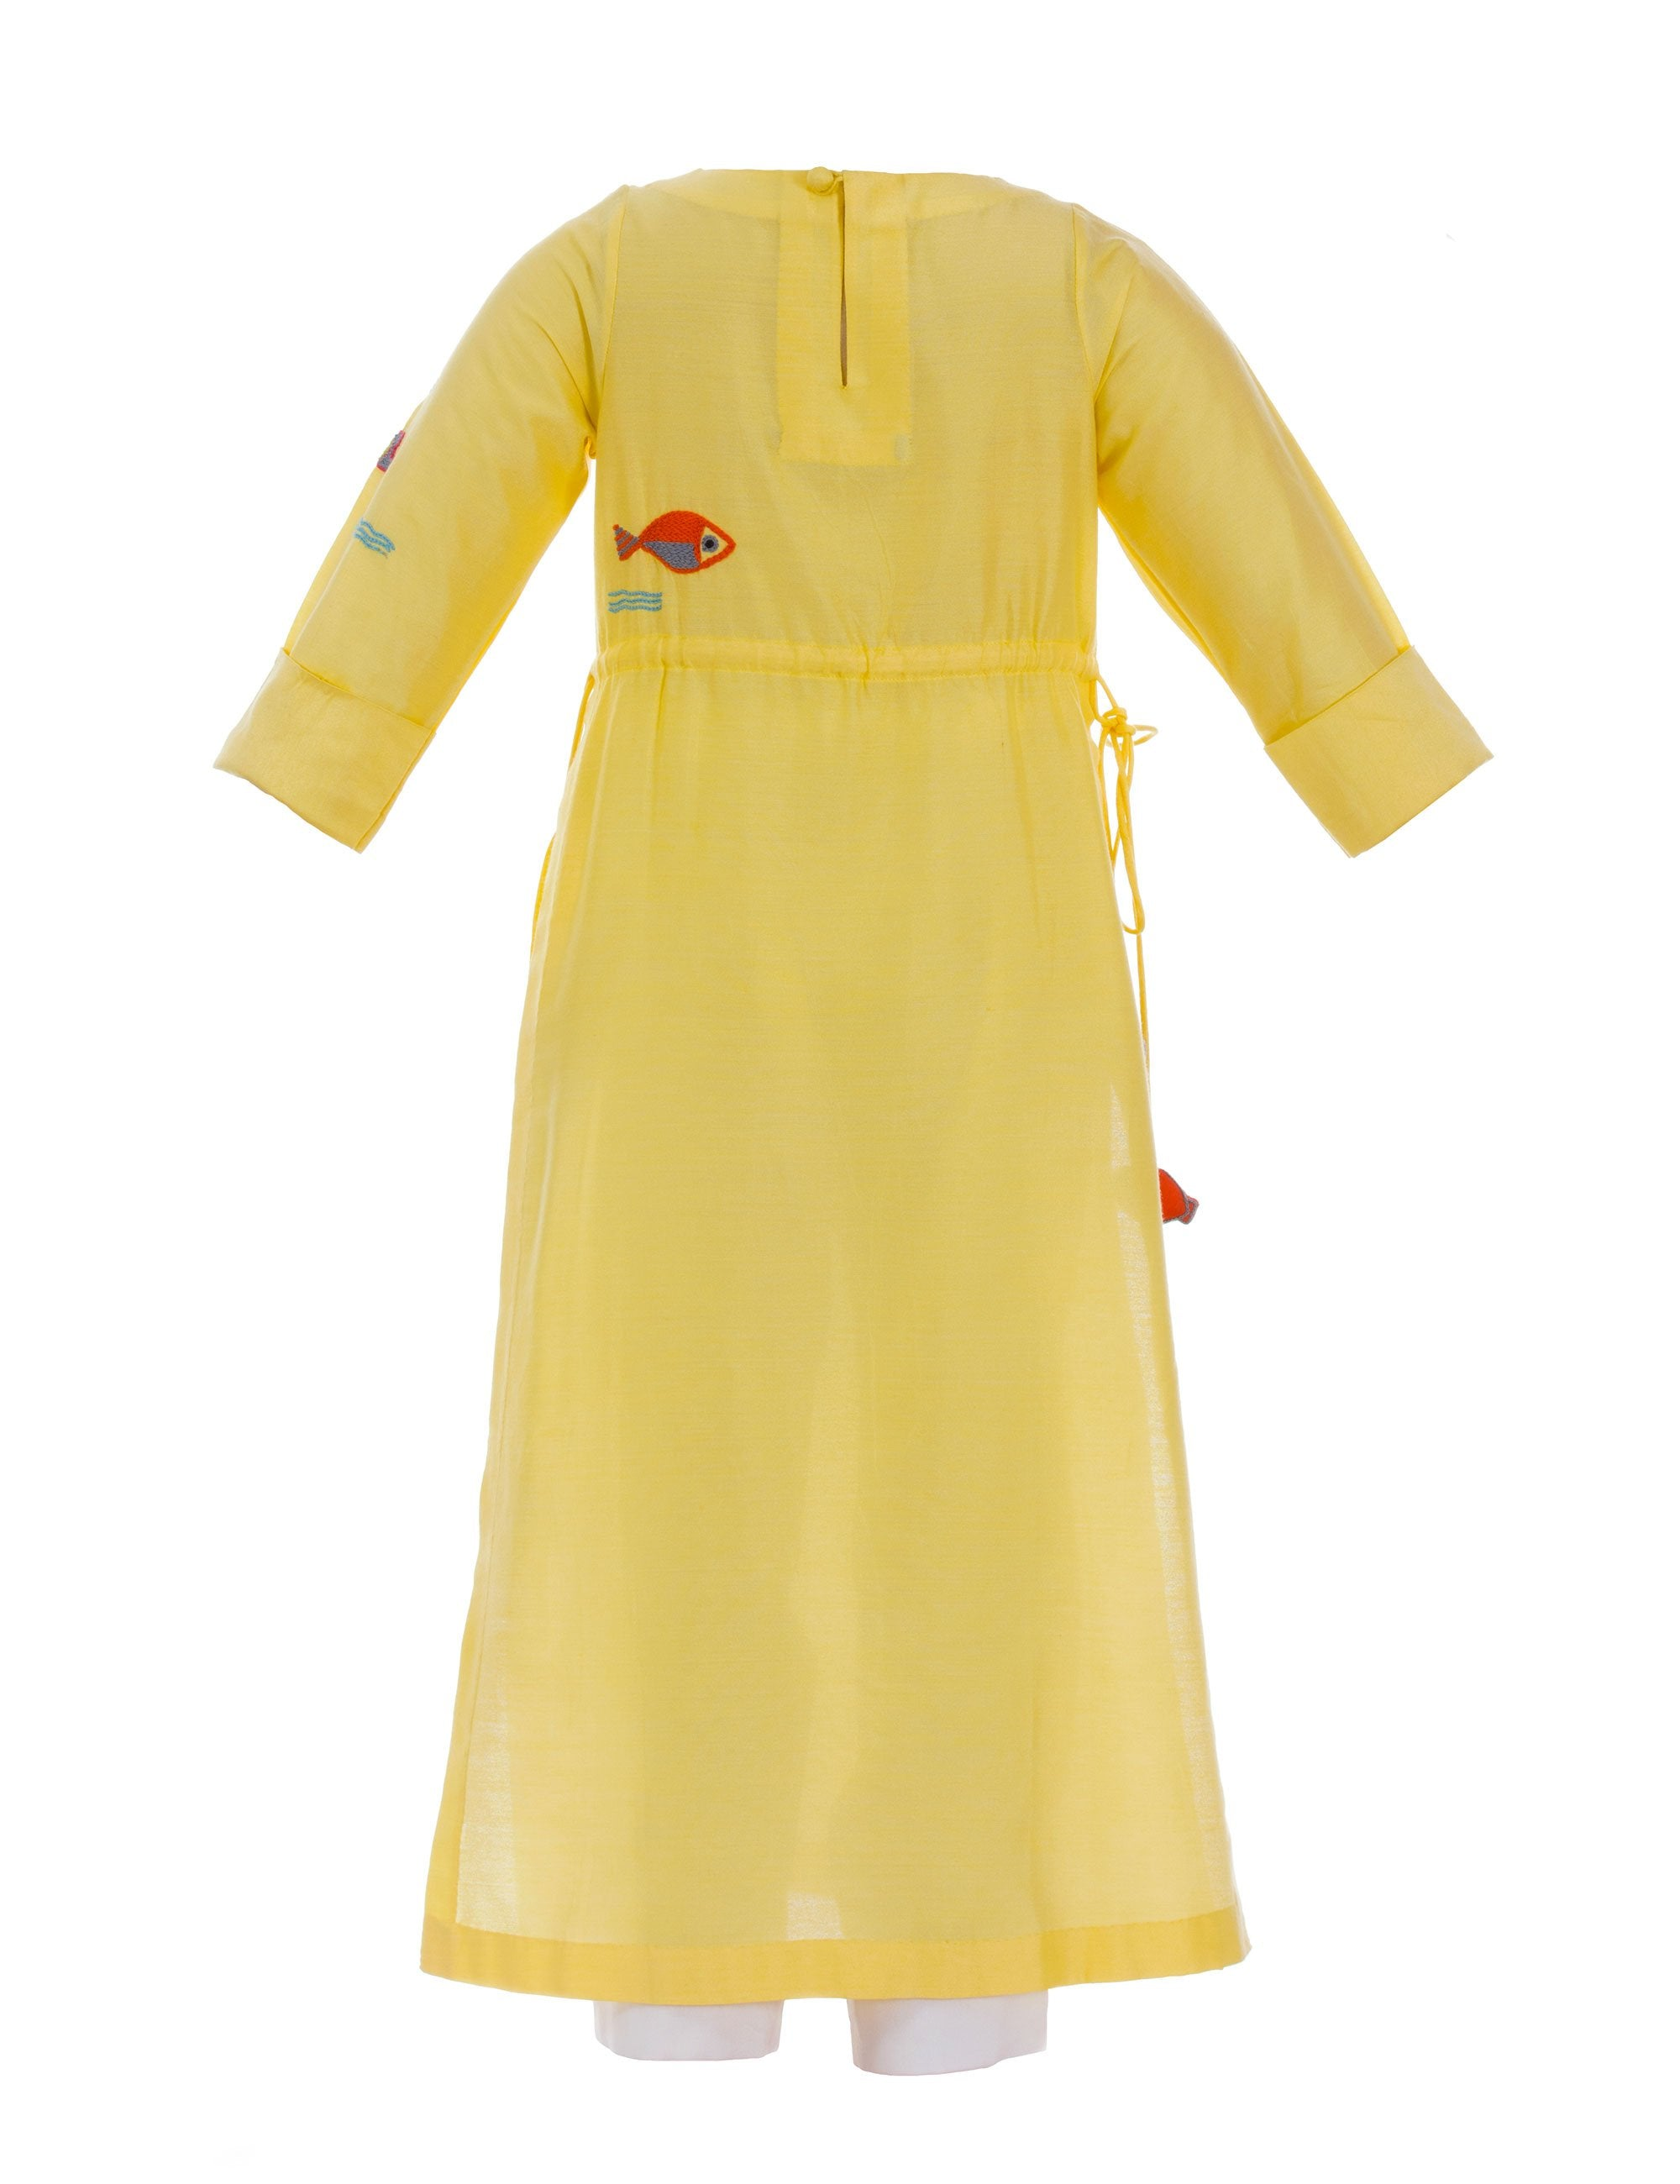 Multi Fish Tunic with Straight Pants in Yellow for Girls